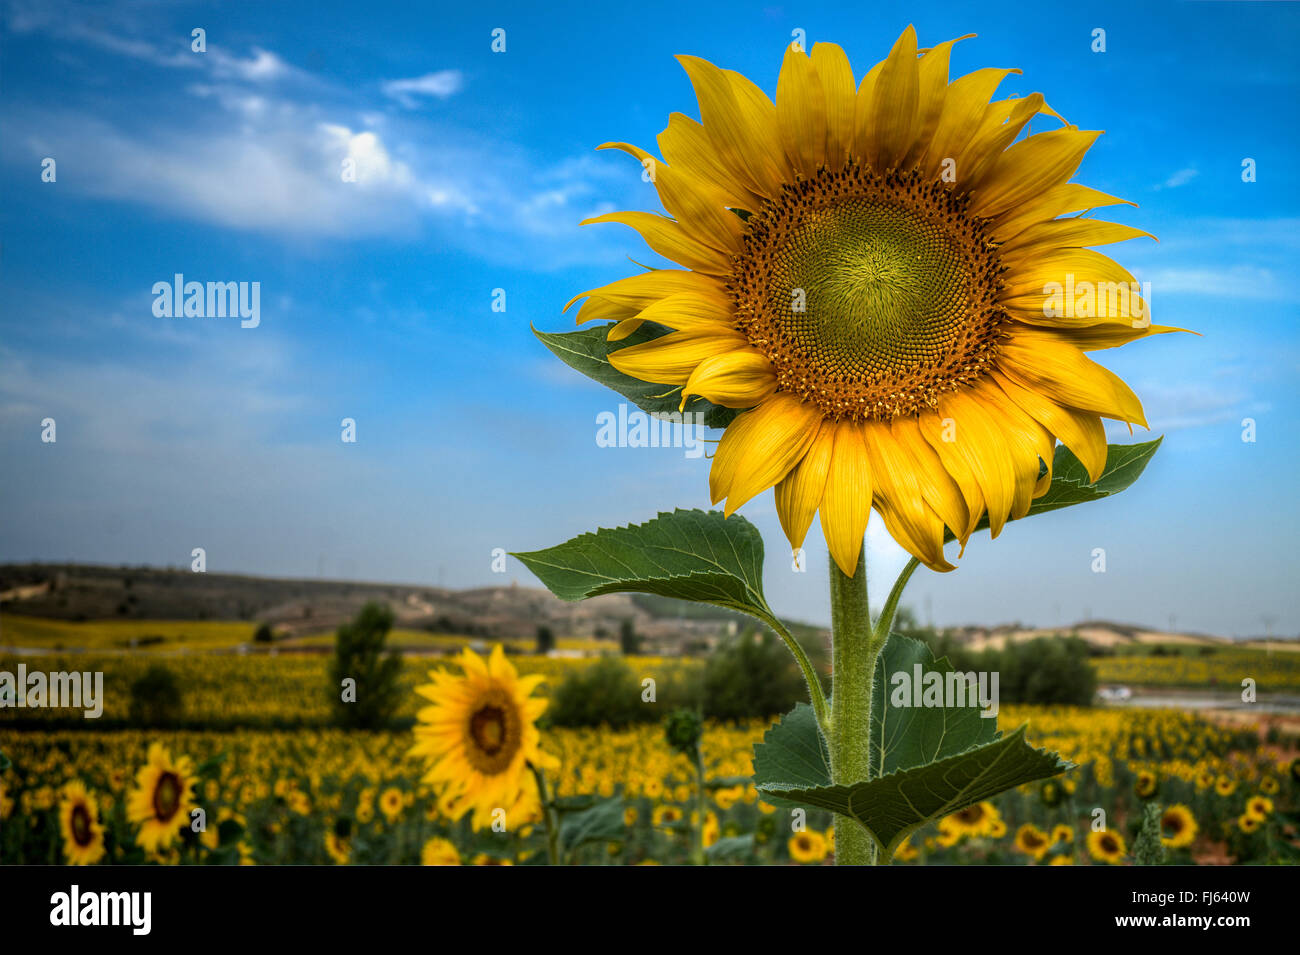 Sunflowers in the fields of Soria, Castilla Leon, Spain - Stock Image